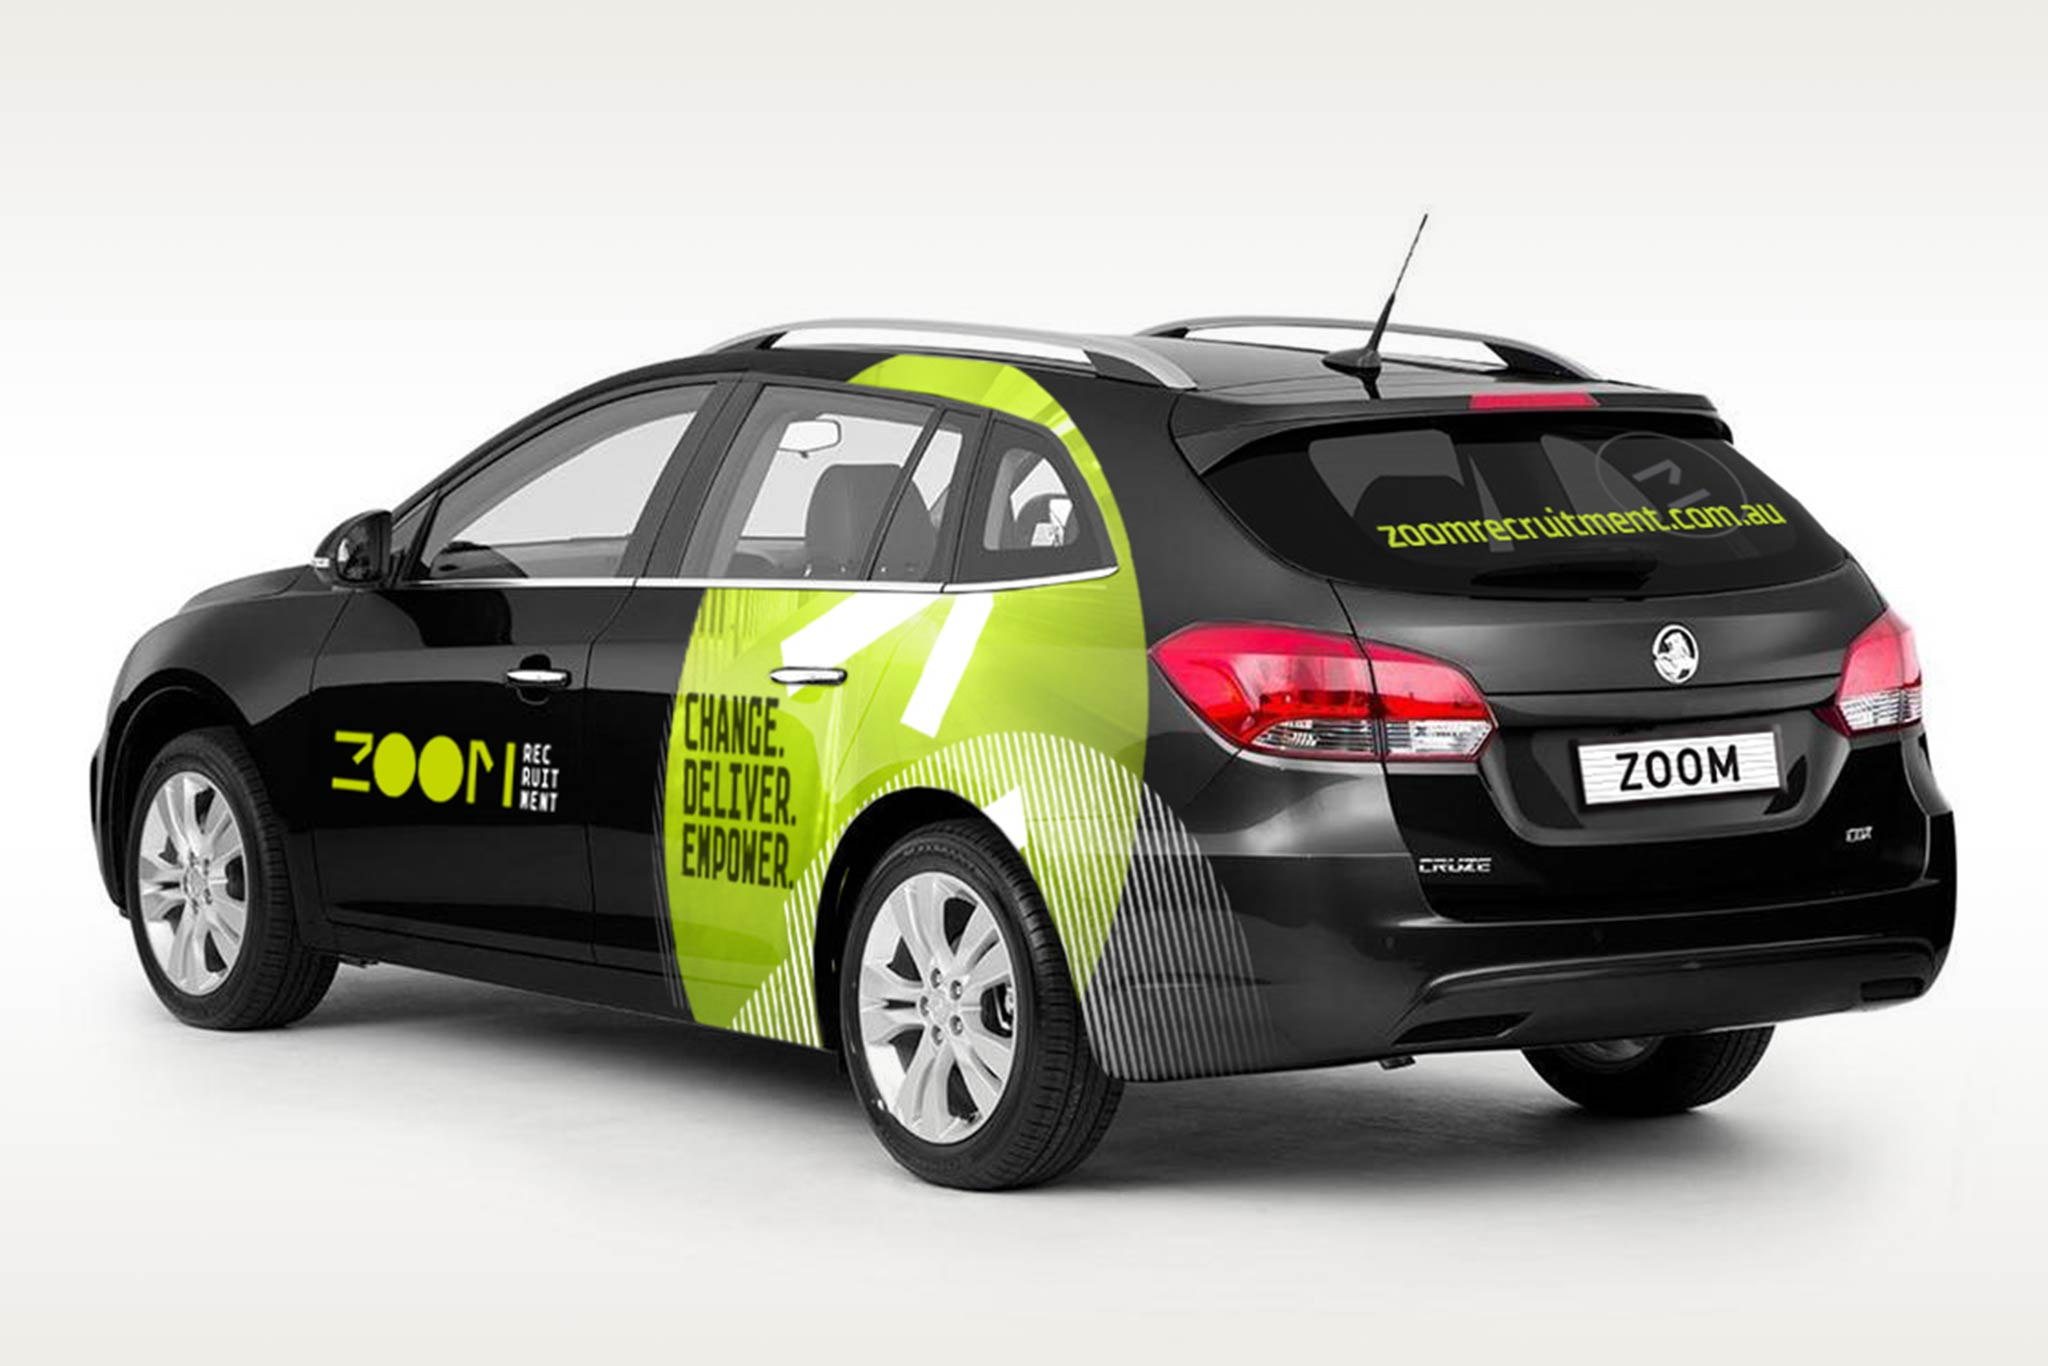 zoom-recruitment-vehicle-wrap_1